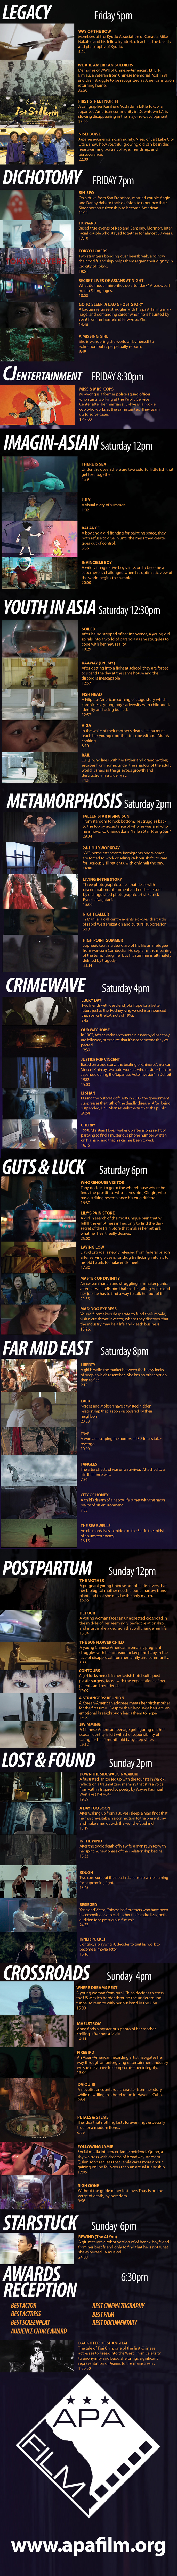 Schedule — DC Asian Pacific American Film